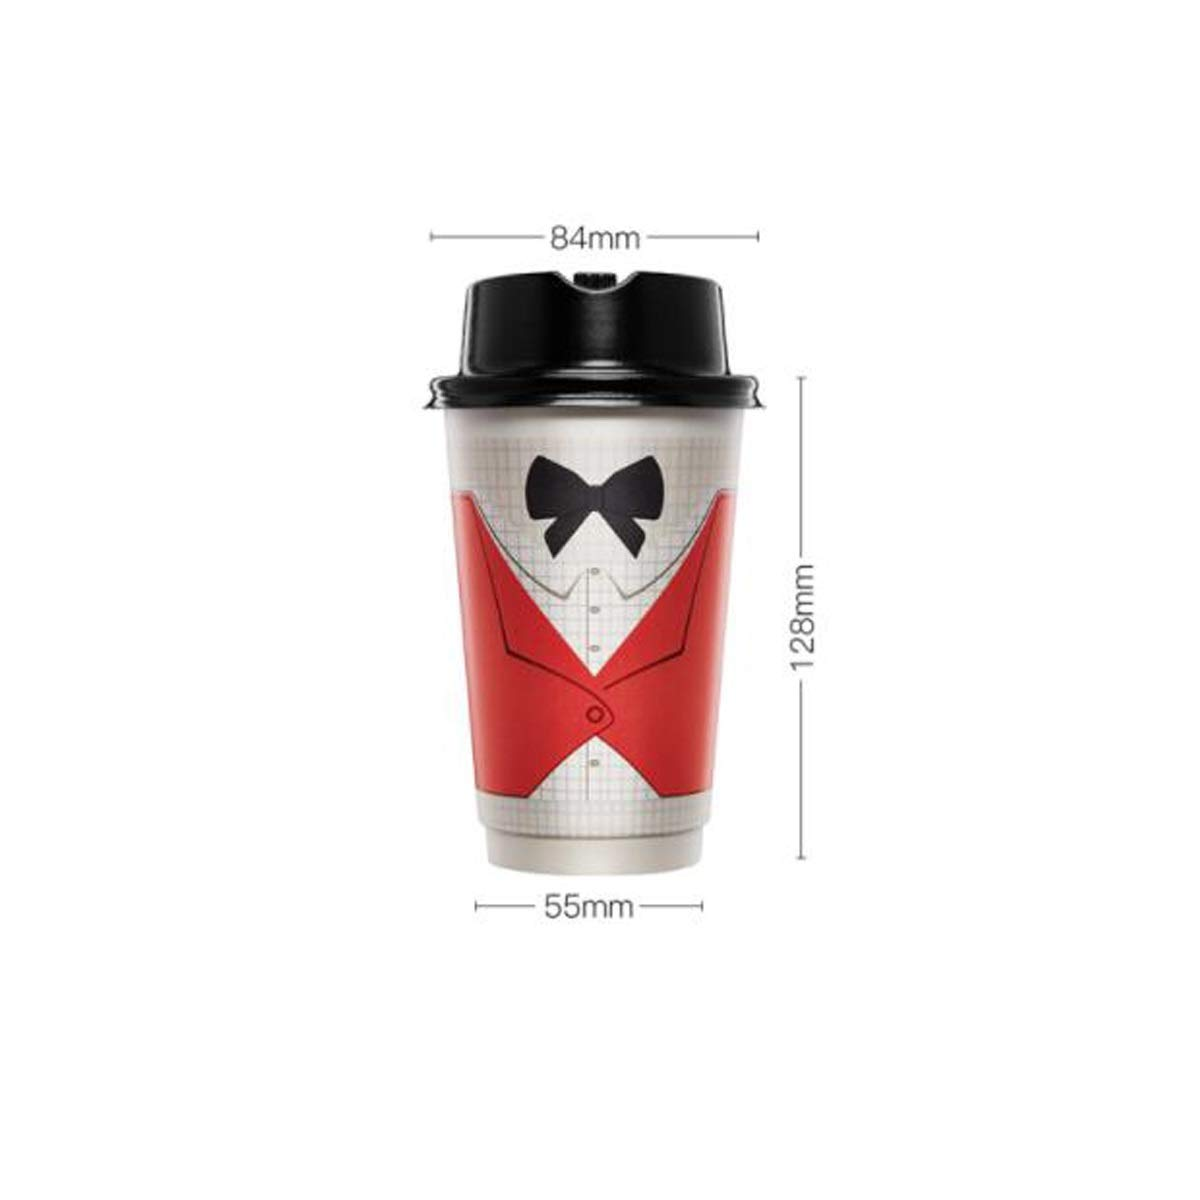 TONGBOSHI Disposable Paper Cup, Gentleman Cup, Ladies Cup, Coffee Bean Cup, Double Thick Insulation, Anti-scalding, With Lid, Couple Milk Tea Personality Cup, High Face Value 382ml, Gentleman Cup + Cu